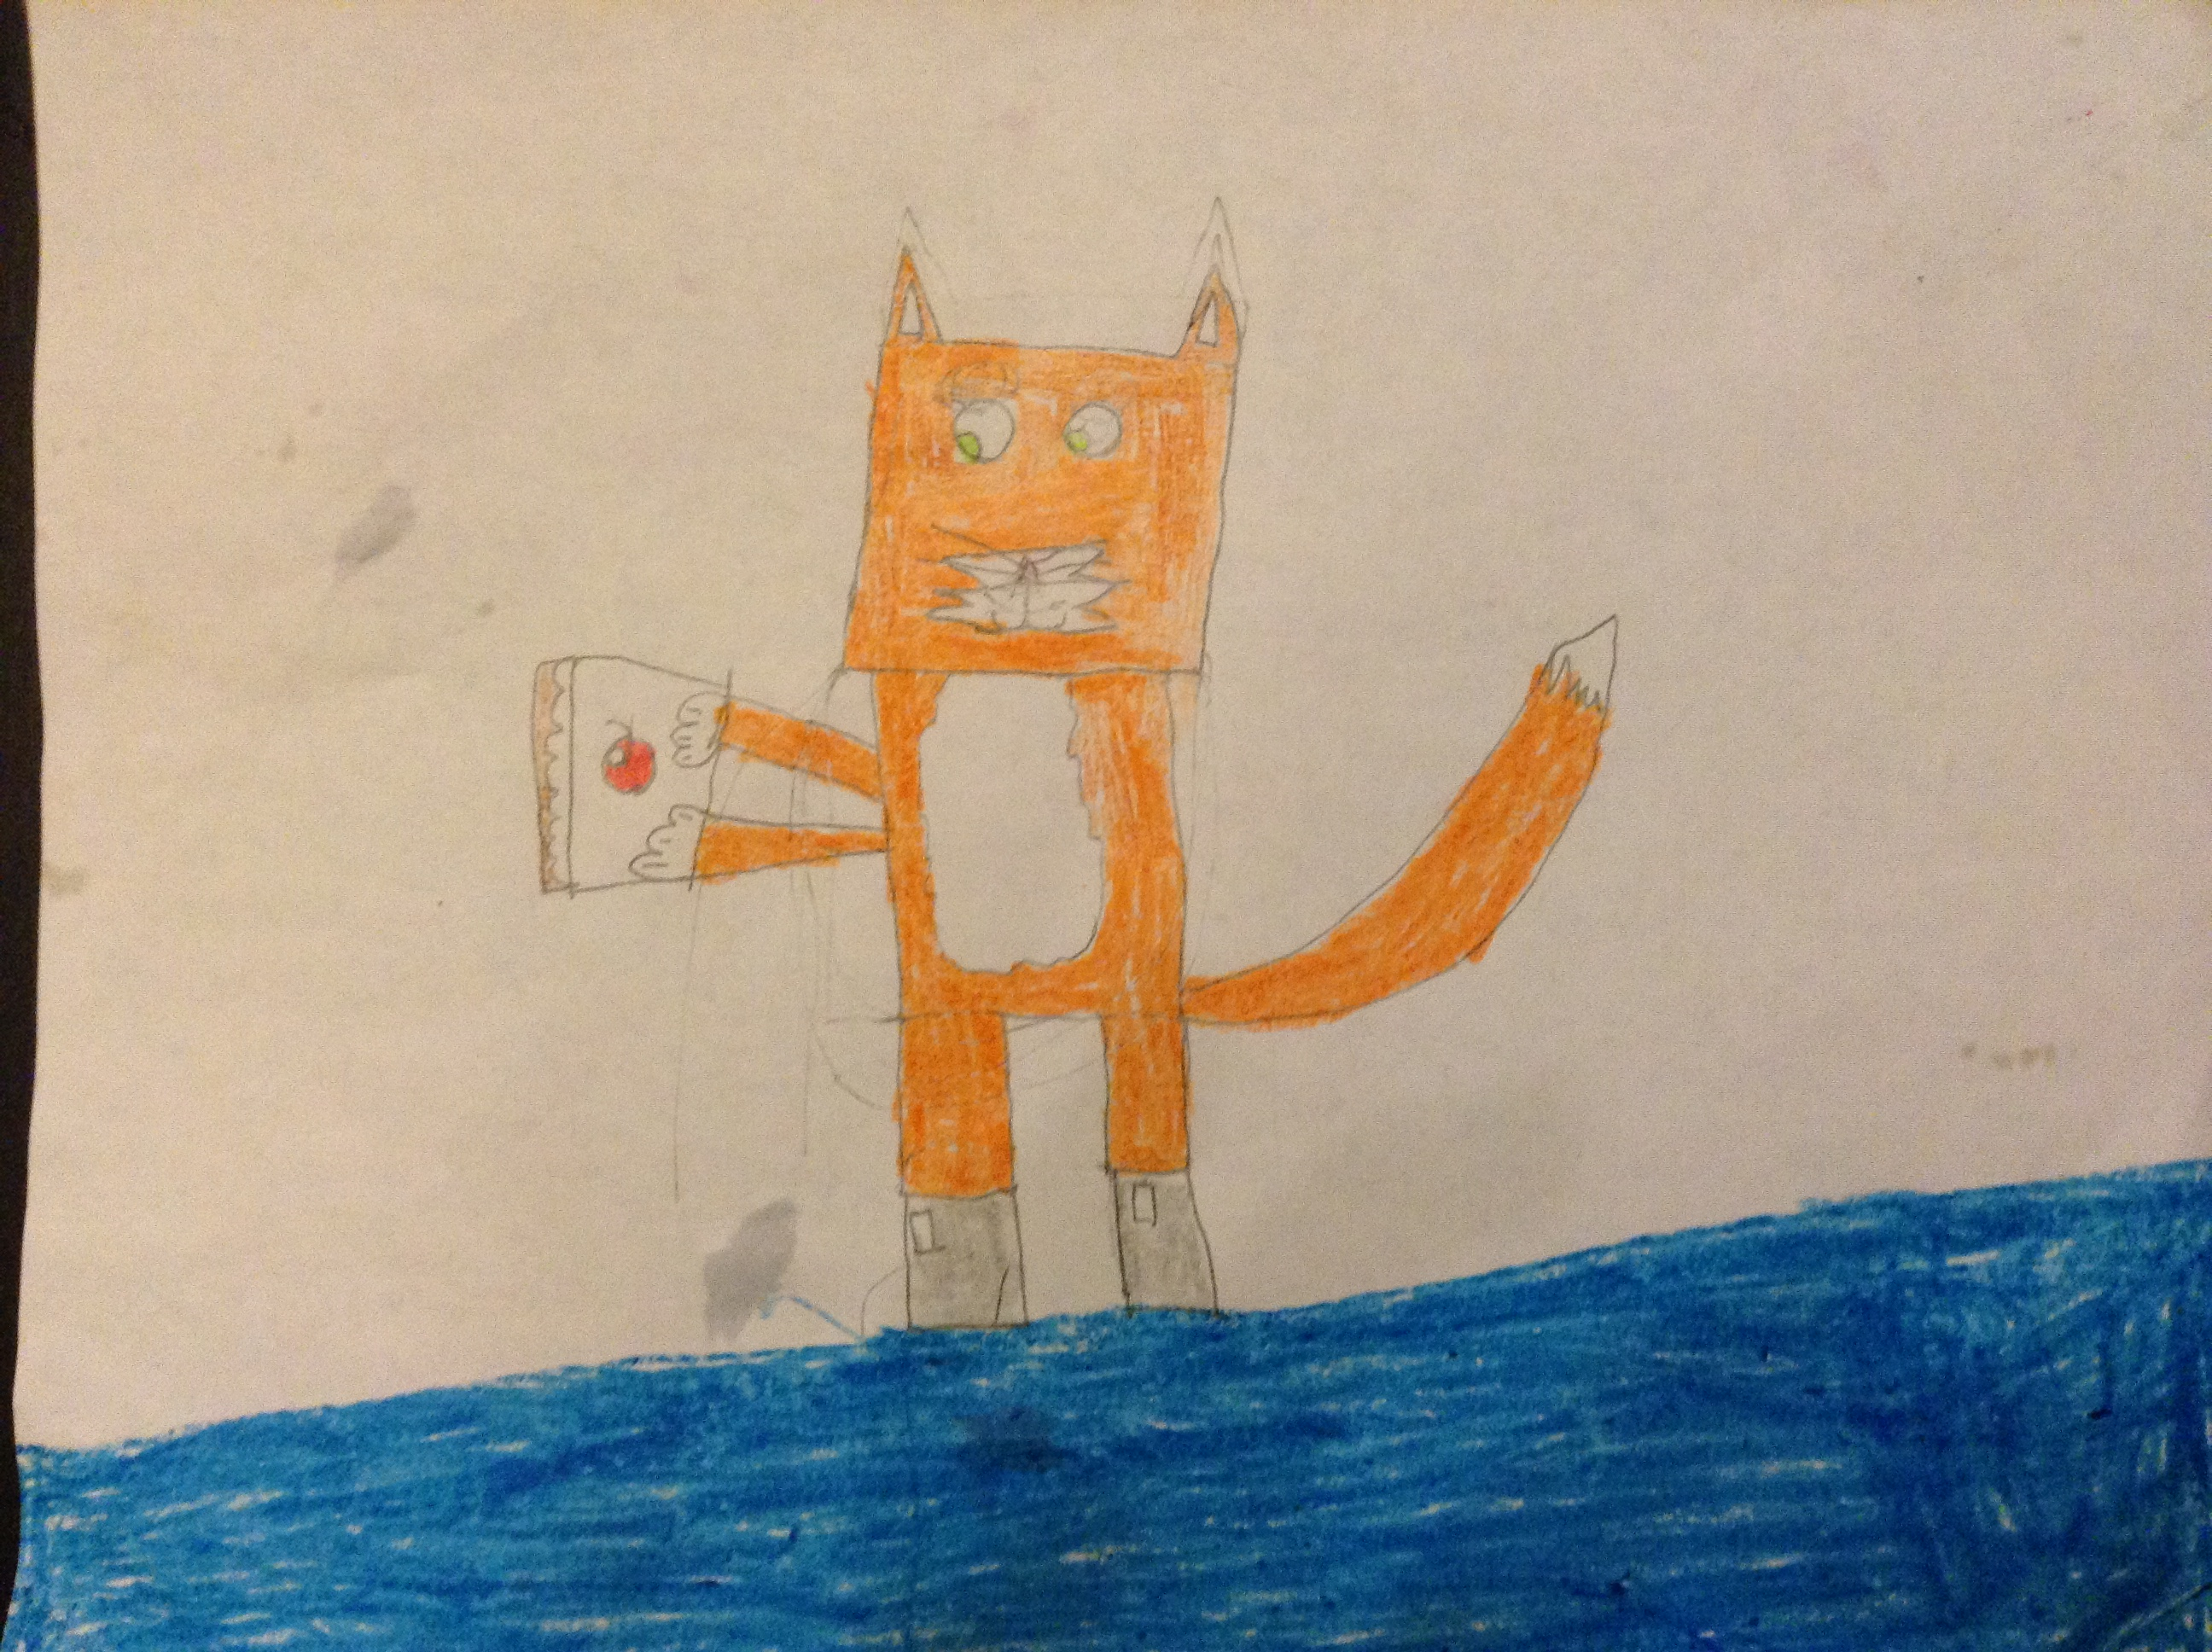 stampylongnose images stampy holding a cake hd wallpaper and